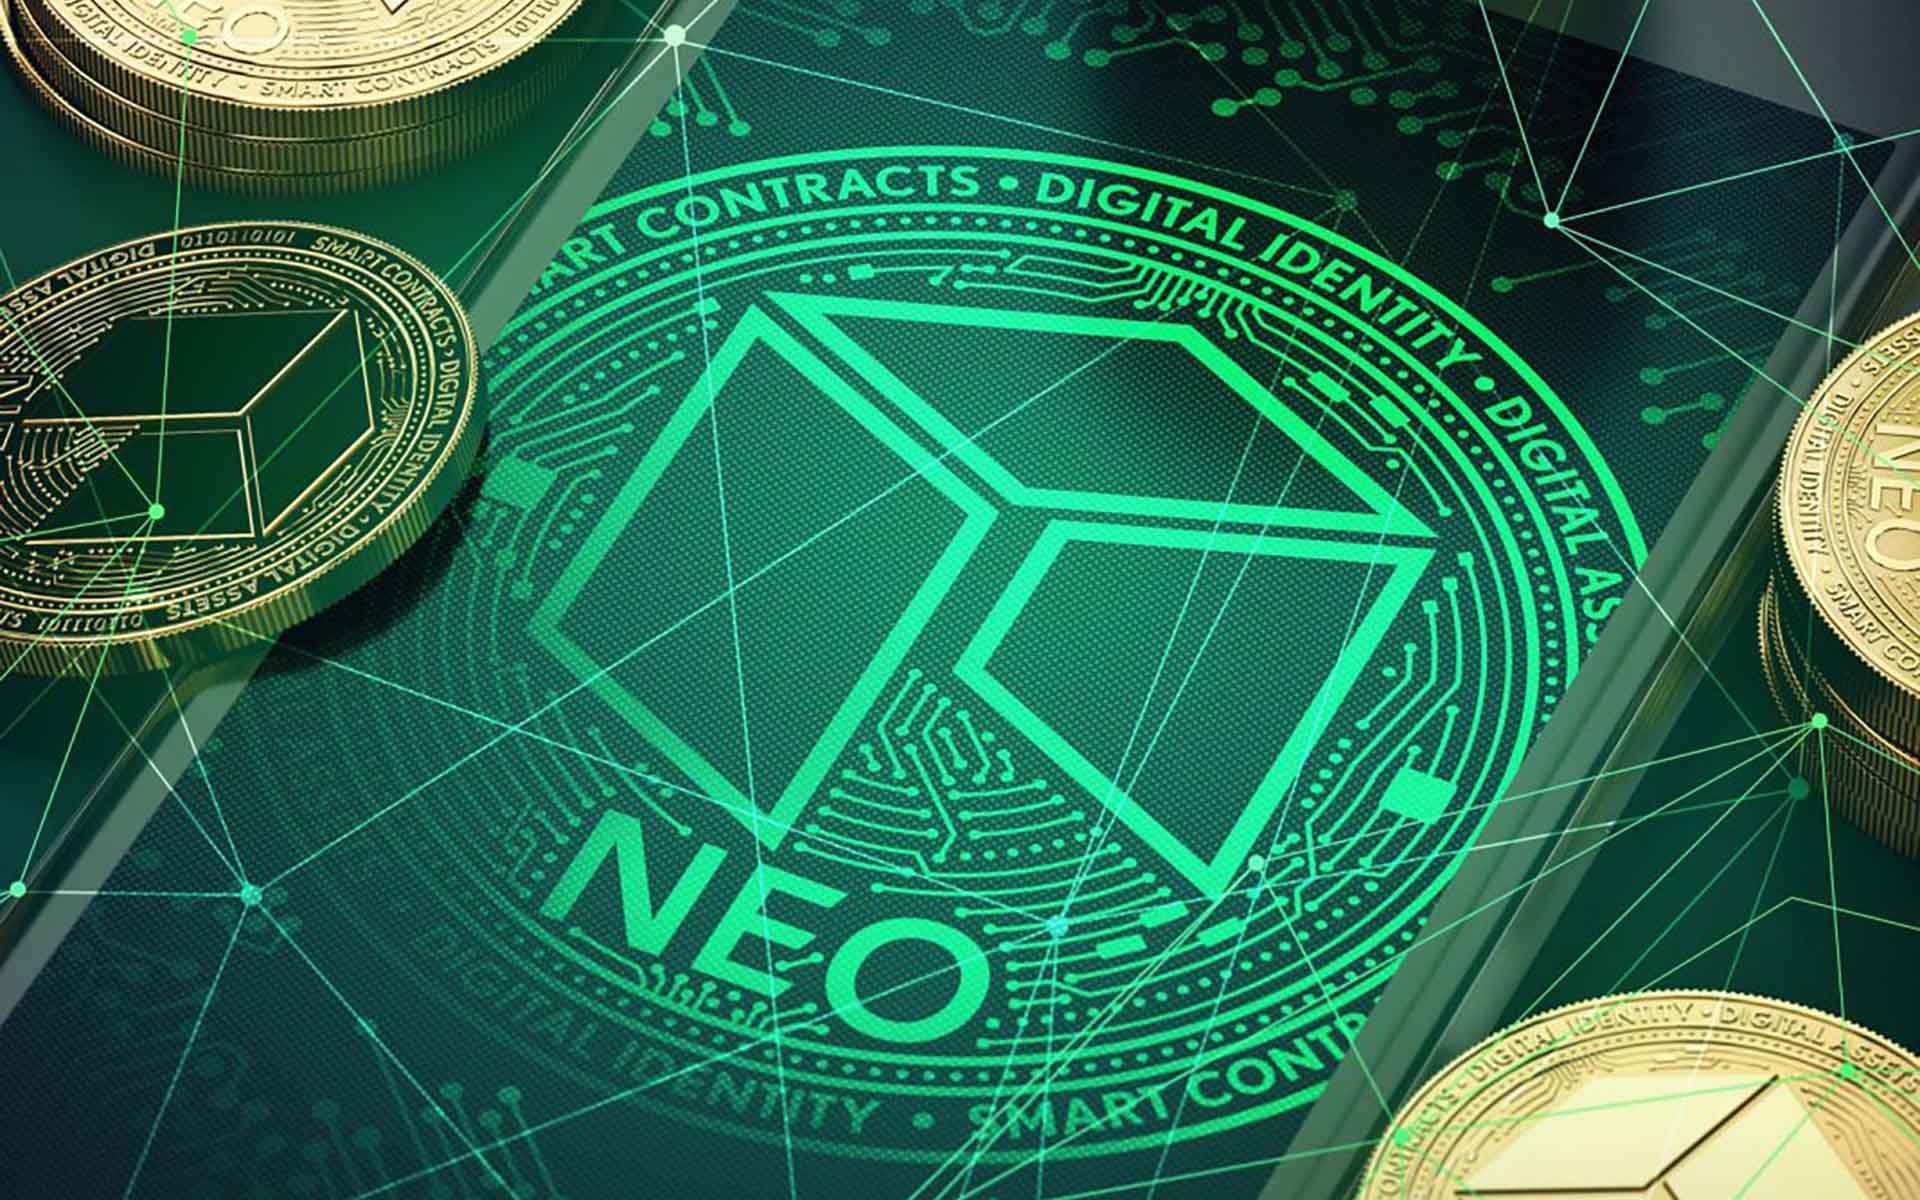 NEO (NEO) Team Presented Its October Updates And Celebrated Its Growing NEO Community